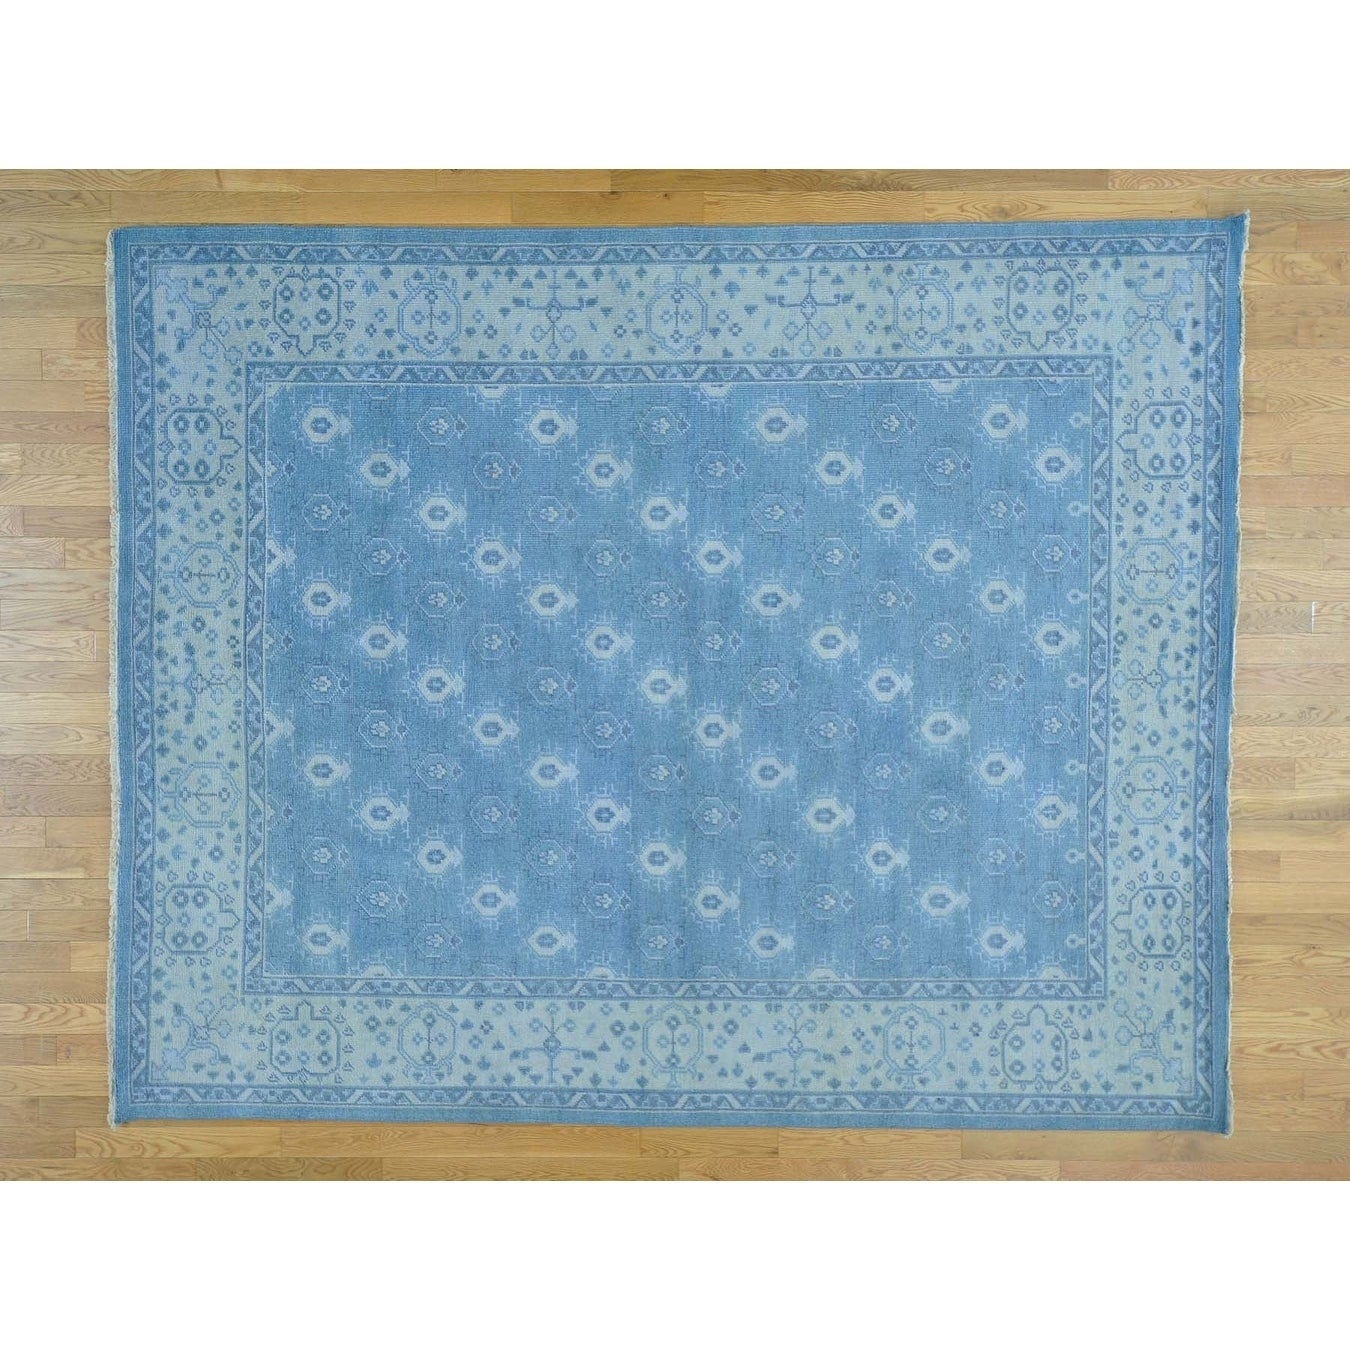 Hand Knotted Blue Oushak And Peshawar with Wool Oriental Rug - 710 x 99